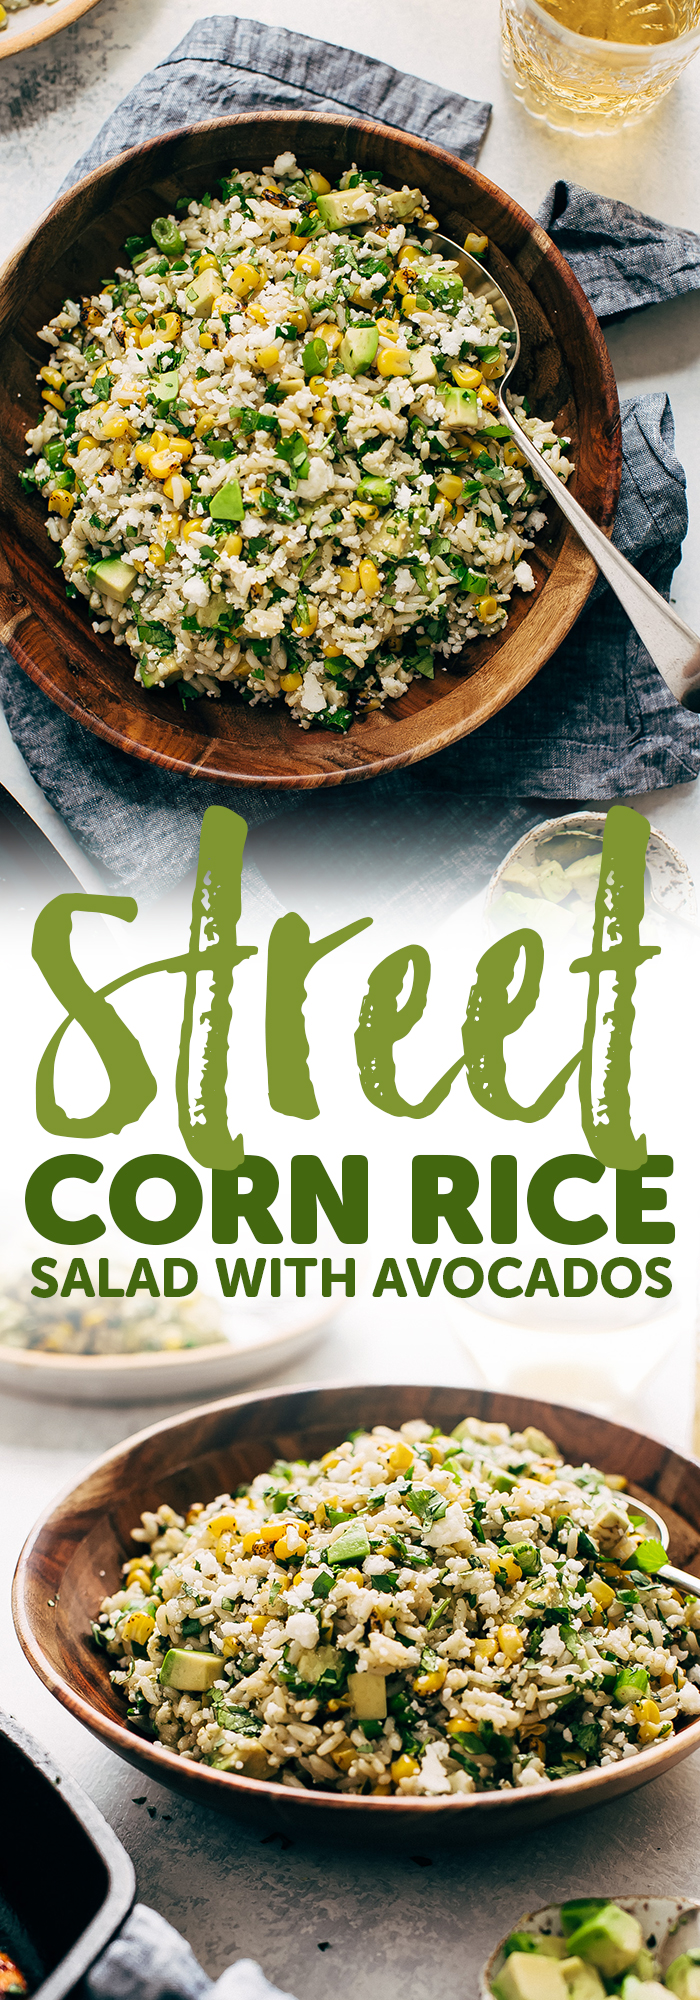 Street Corn Rice Salad with Avocados - the easiest salad you can take to a picnic or barbecue party this summer! My corn salad uses leftover cooked rice and is loaded with an easy to make lemon lime dressing! #streetcornsalad #mexicanstreetcorn #elotessalad #cornricesalad #elotes | Littlespicejar.com